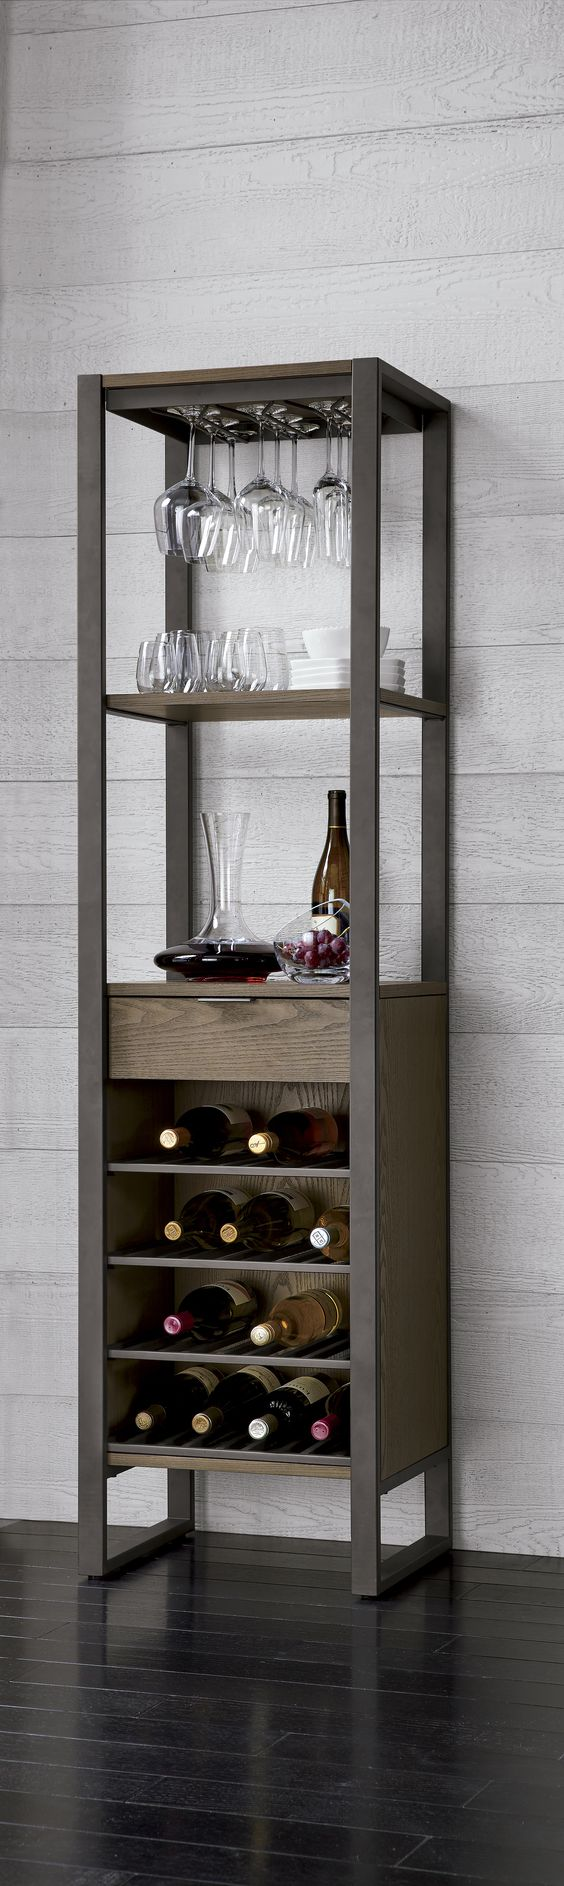 wine tower with bottles in the lower part and glasses in the upper part